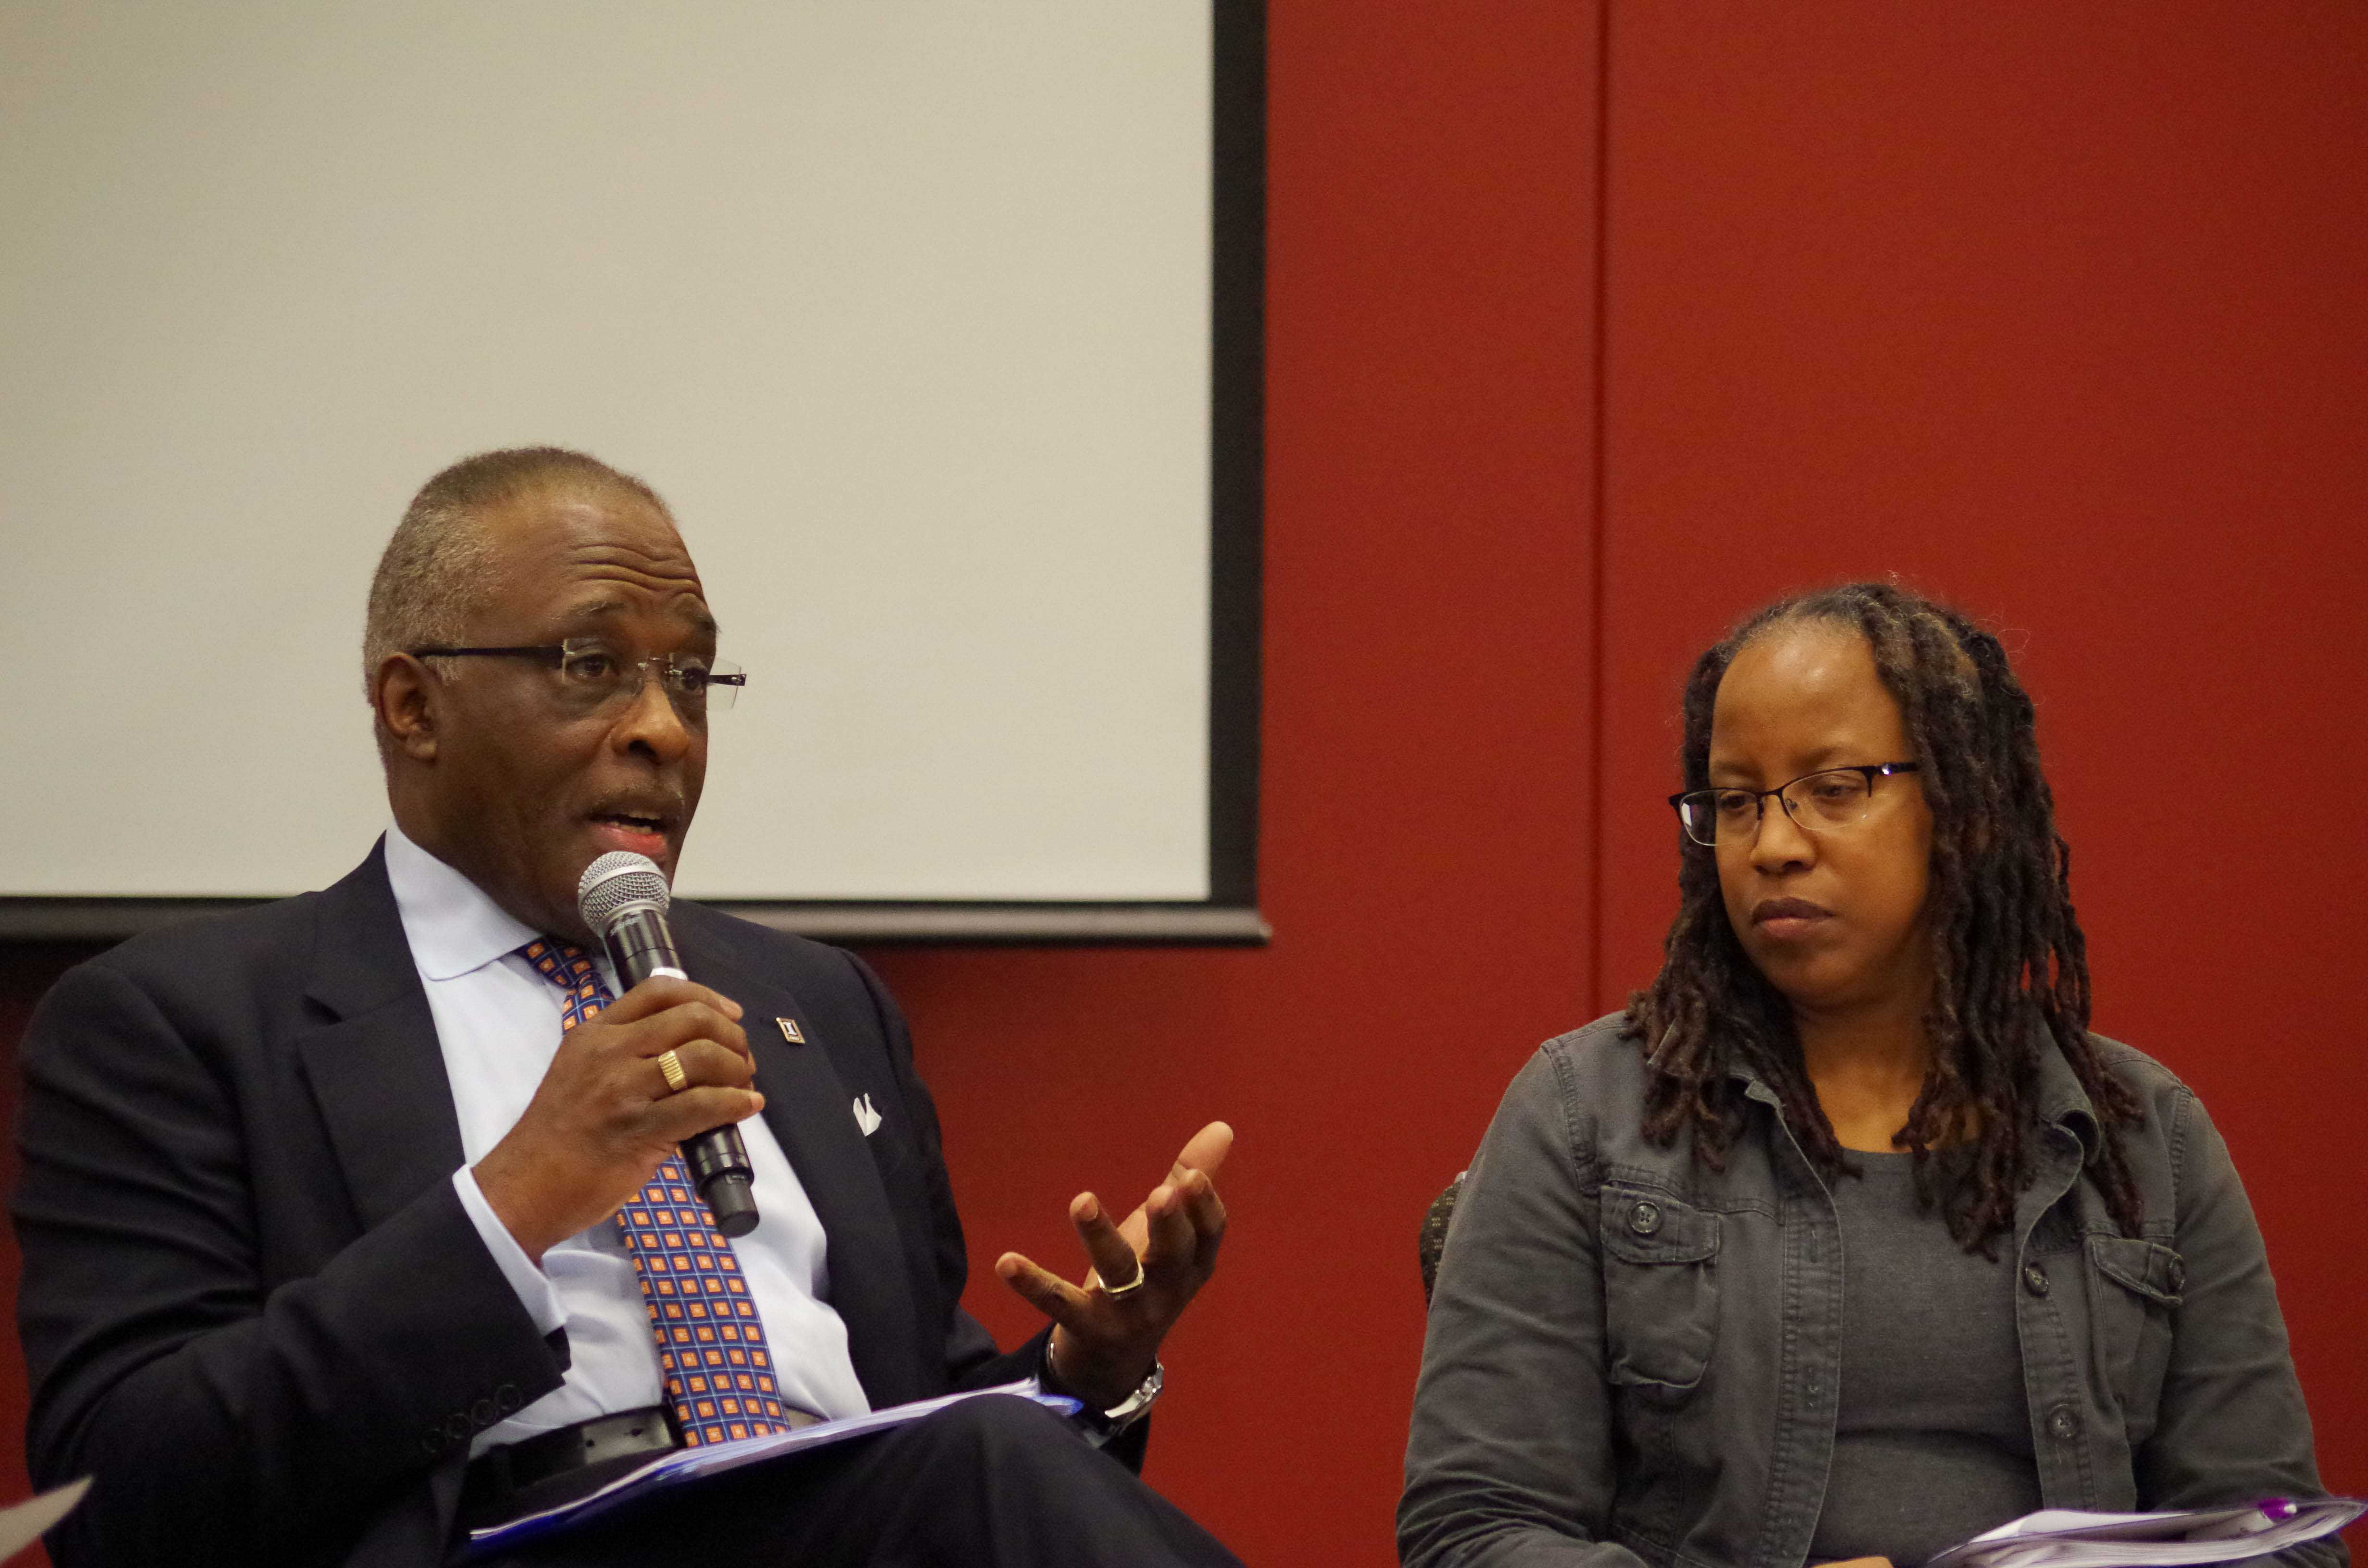 Chancellor Robert J. Jones along with other University Administrators are being active about informing students of President Donald Trump's executive orders.